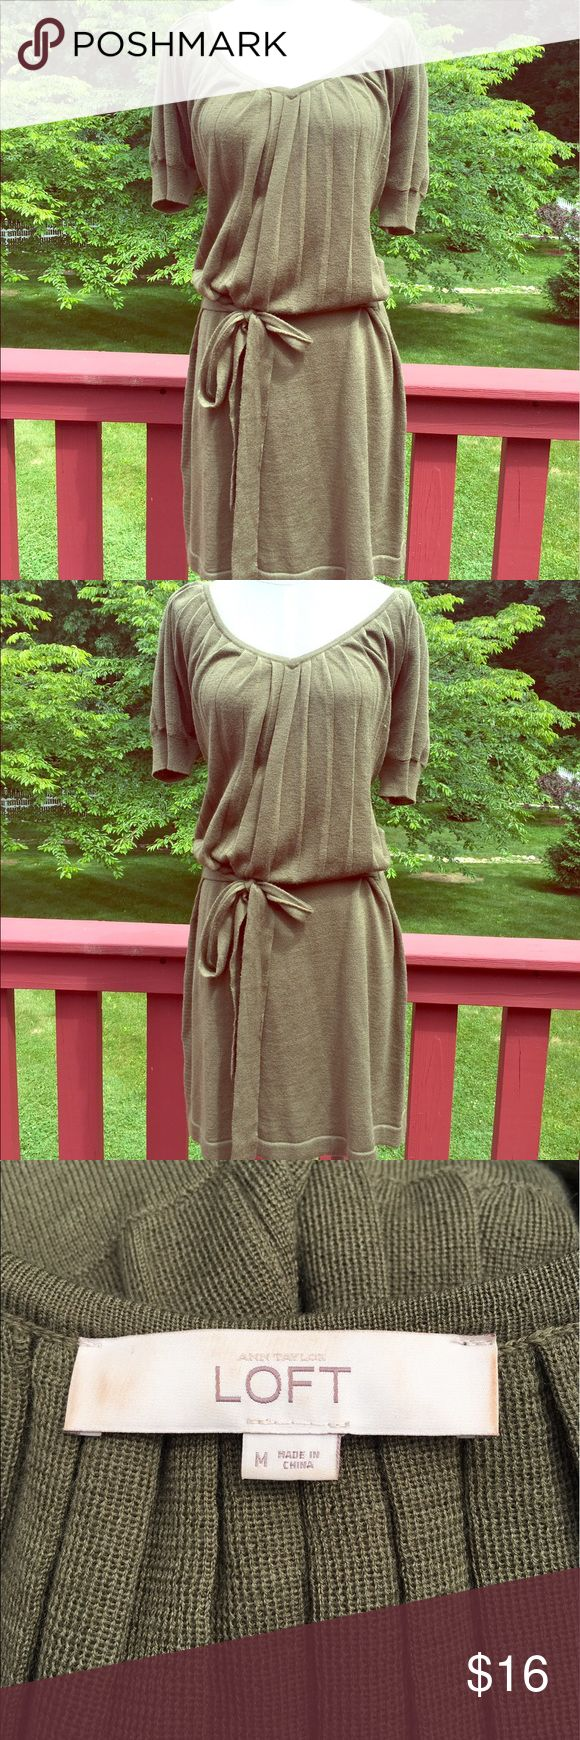 ⭐️Gorgeous Forest Green Loft Summer Dress Size M⭐️ ⭐️Gorgeous Forest Green Loft Summer Dress Size M⭐️ Size Medium. Forest green color. Great condition! Ties in the front. Perfectly paired with cream pumps. Loft brand. Next day shipping. All sales are final. Check out the cream pumps I have listed on my site, size 11. 😍😍 LOFT Dresses Midi